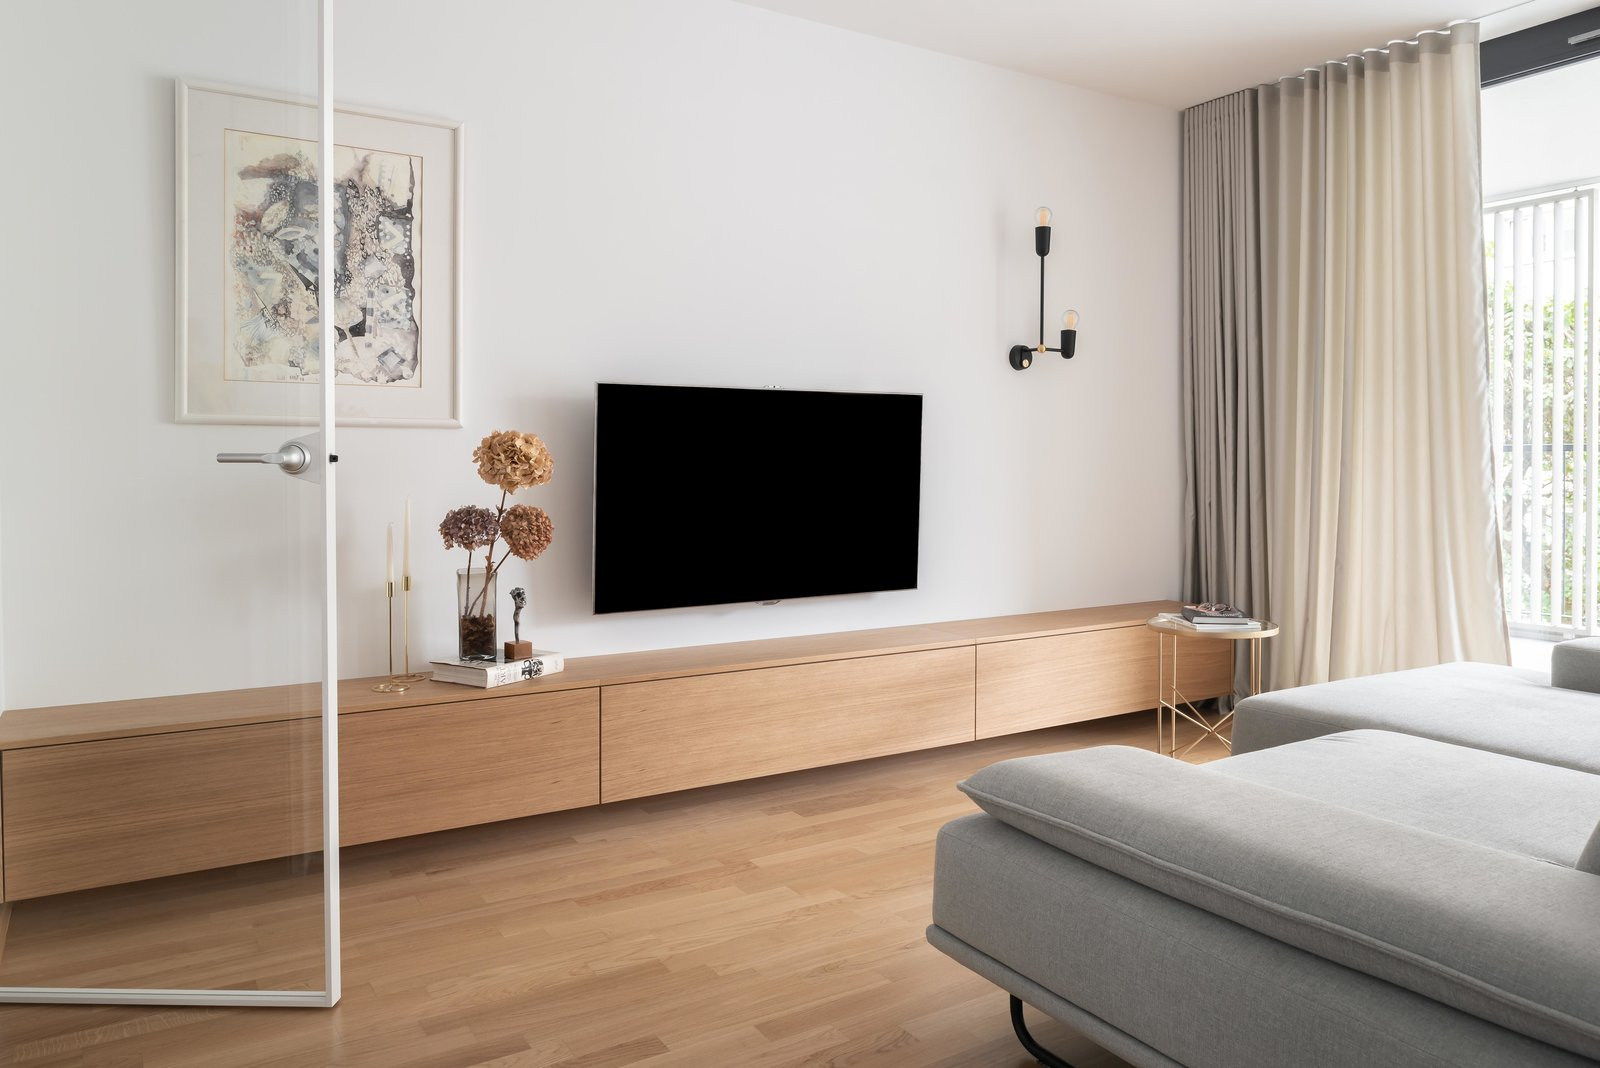 Living Room, Sofa, Coffee Tables, Media Cabinet, and Wall Lighting Living room  Lady by idealist studio